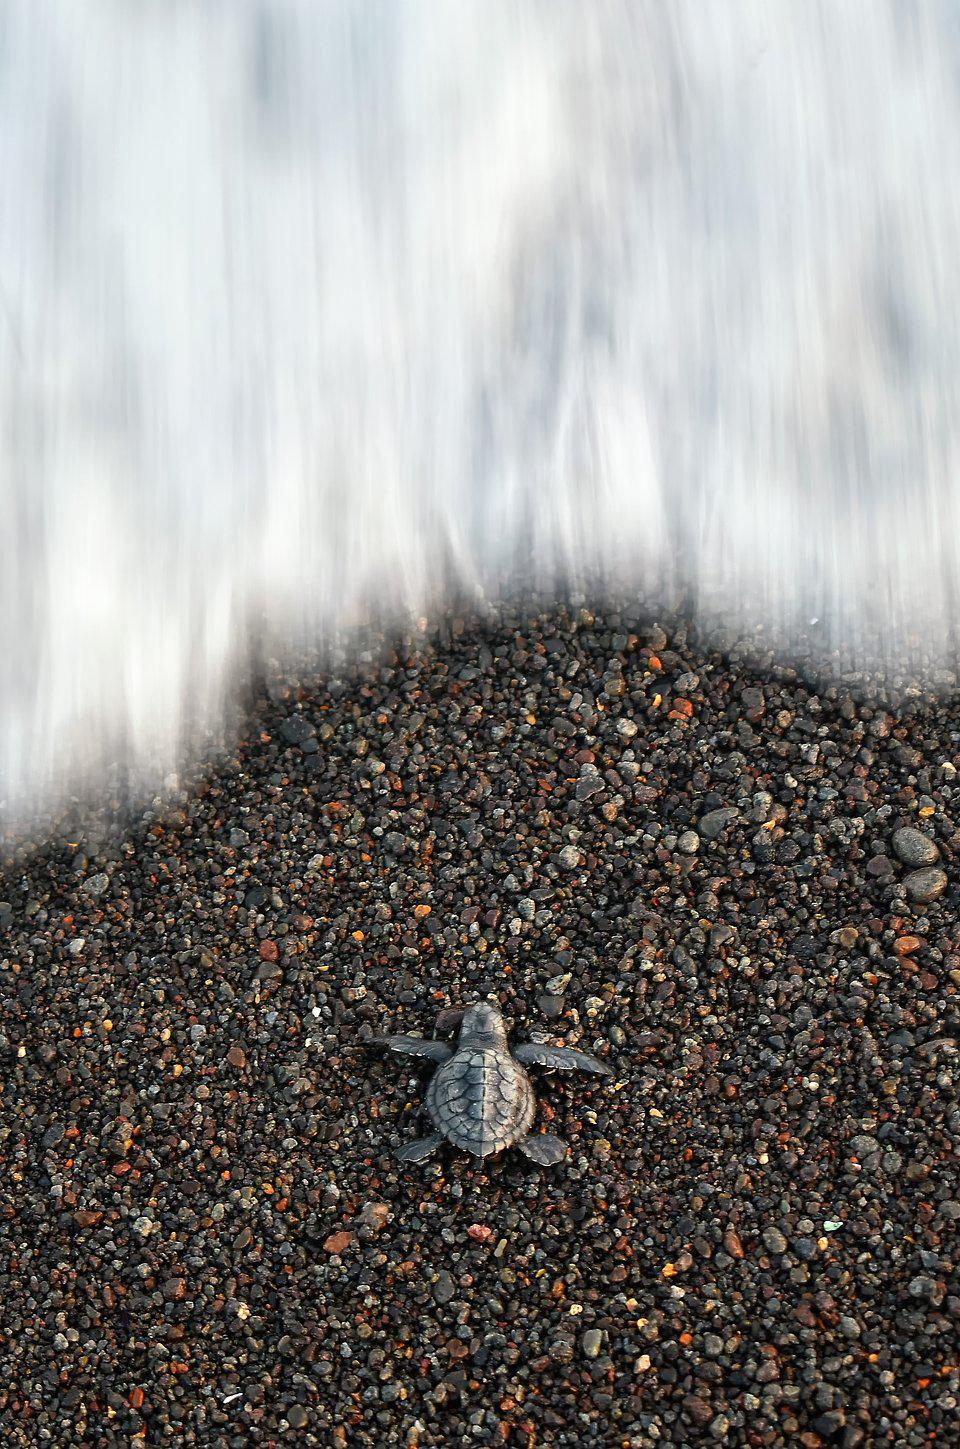 new born turtle trying to get to the sea in Indonesia